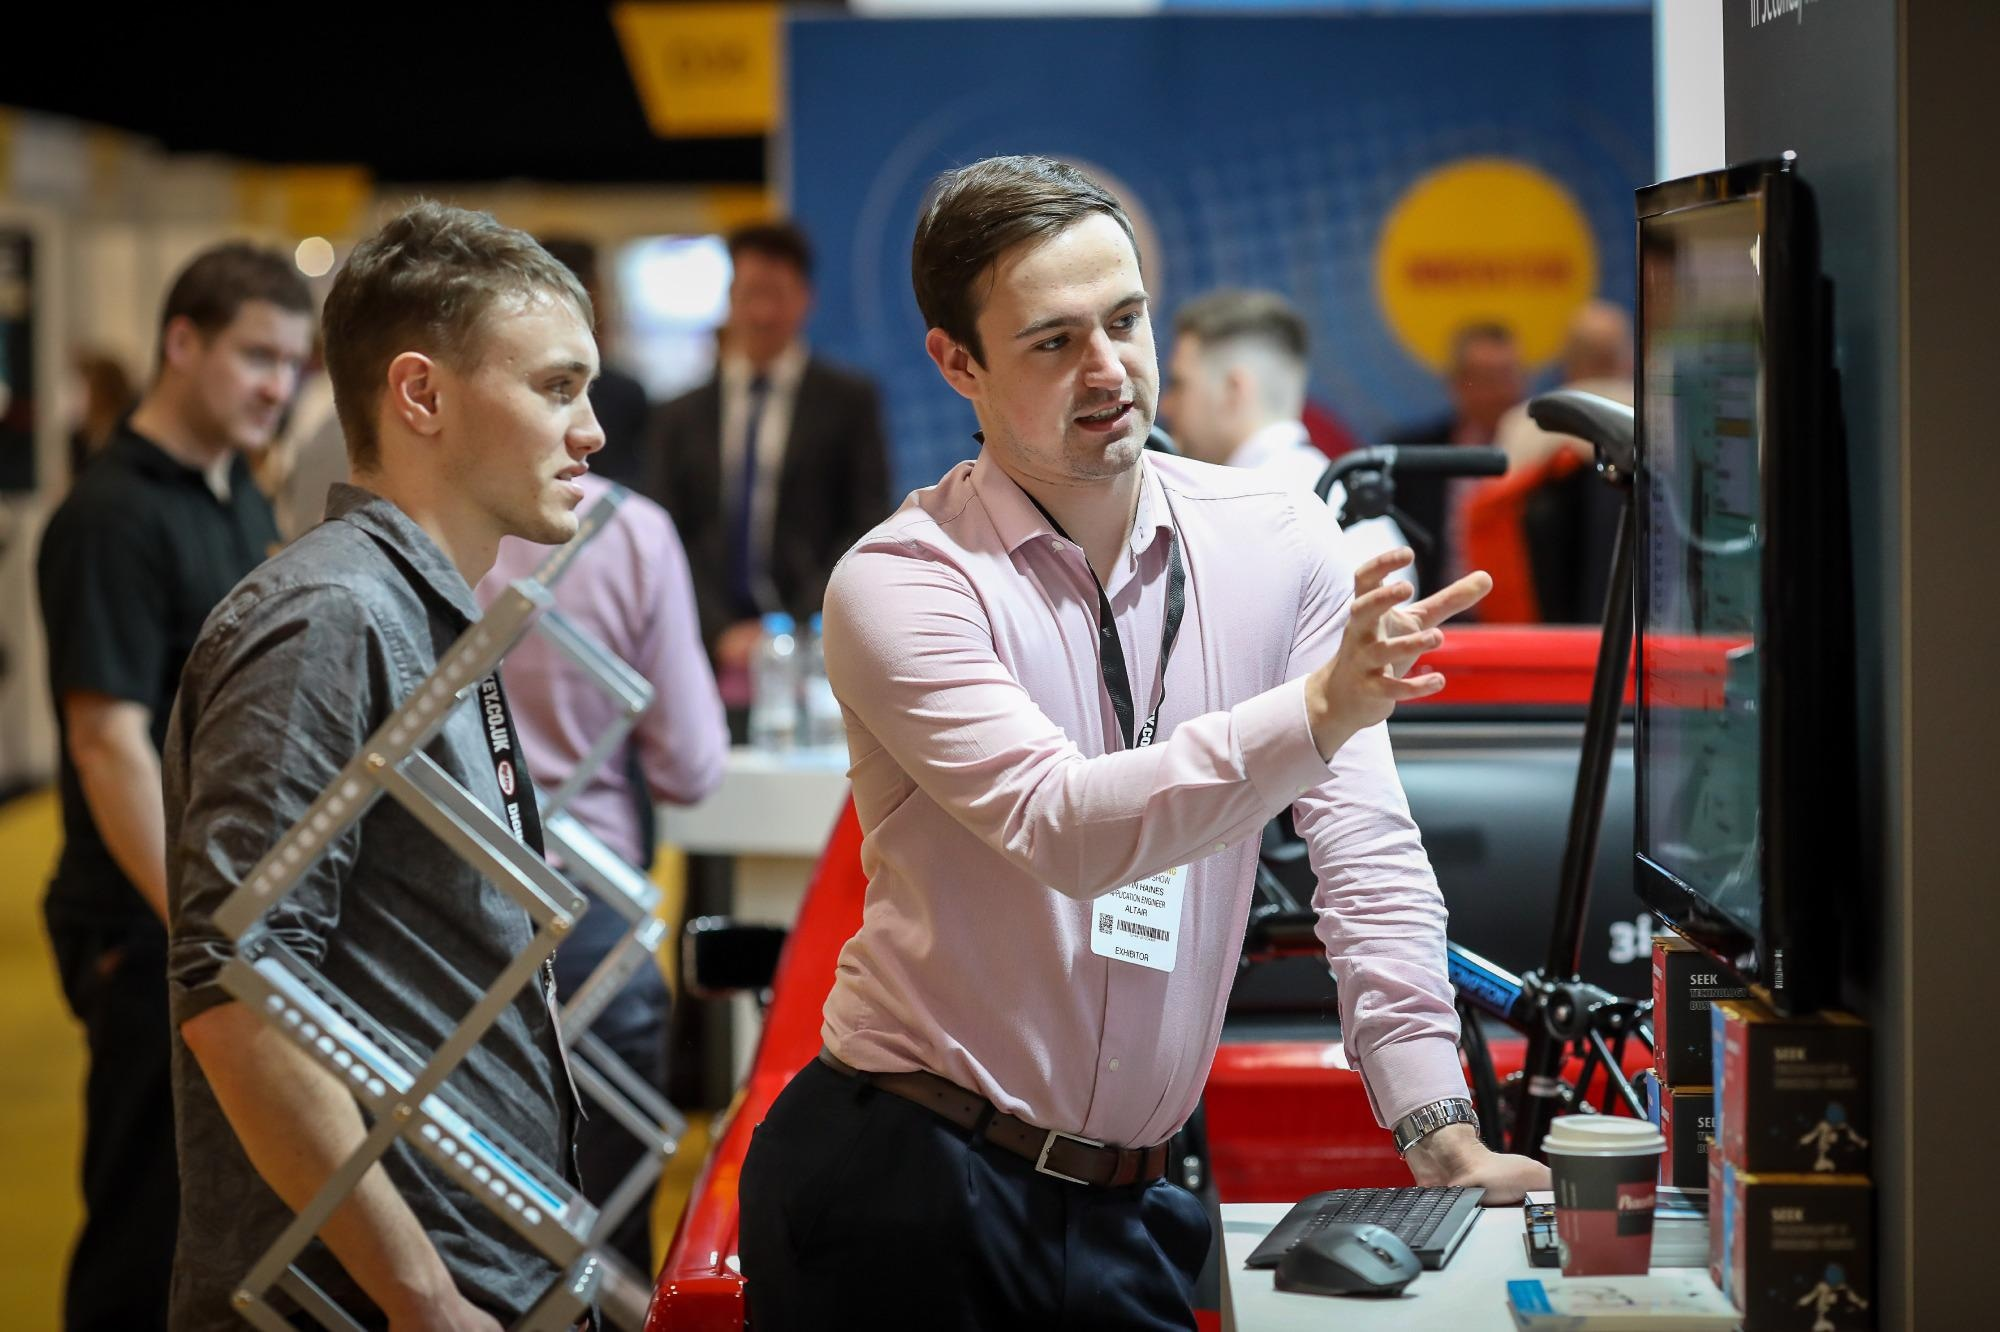 Registration Opens for the 9th Edition of the Engineering Design Show (EDS): The Leading Event for UK Design Engineers